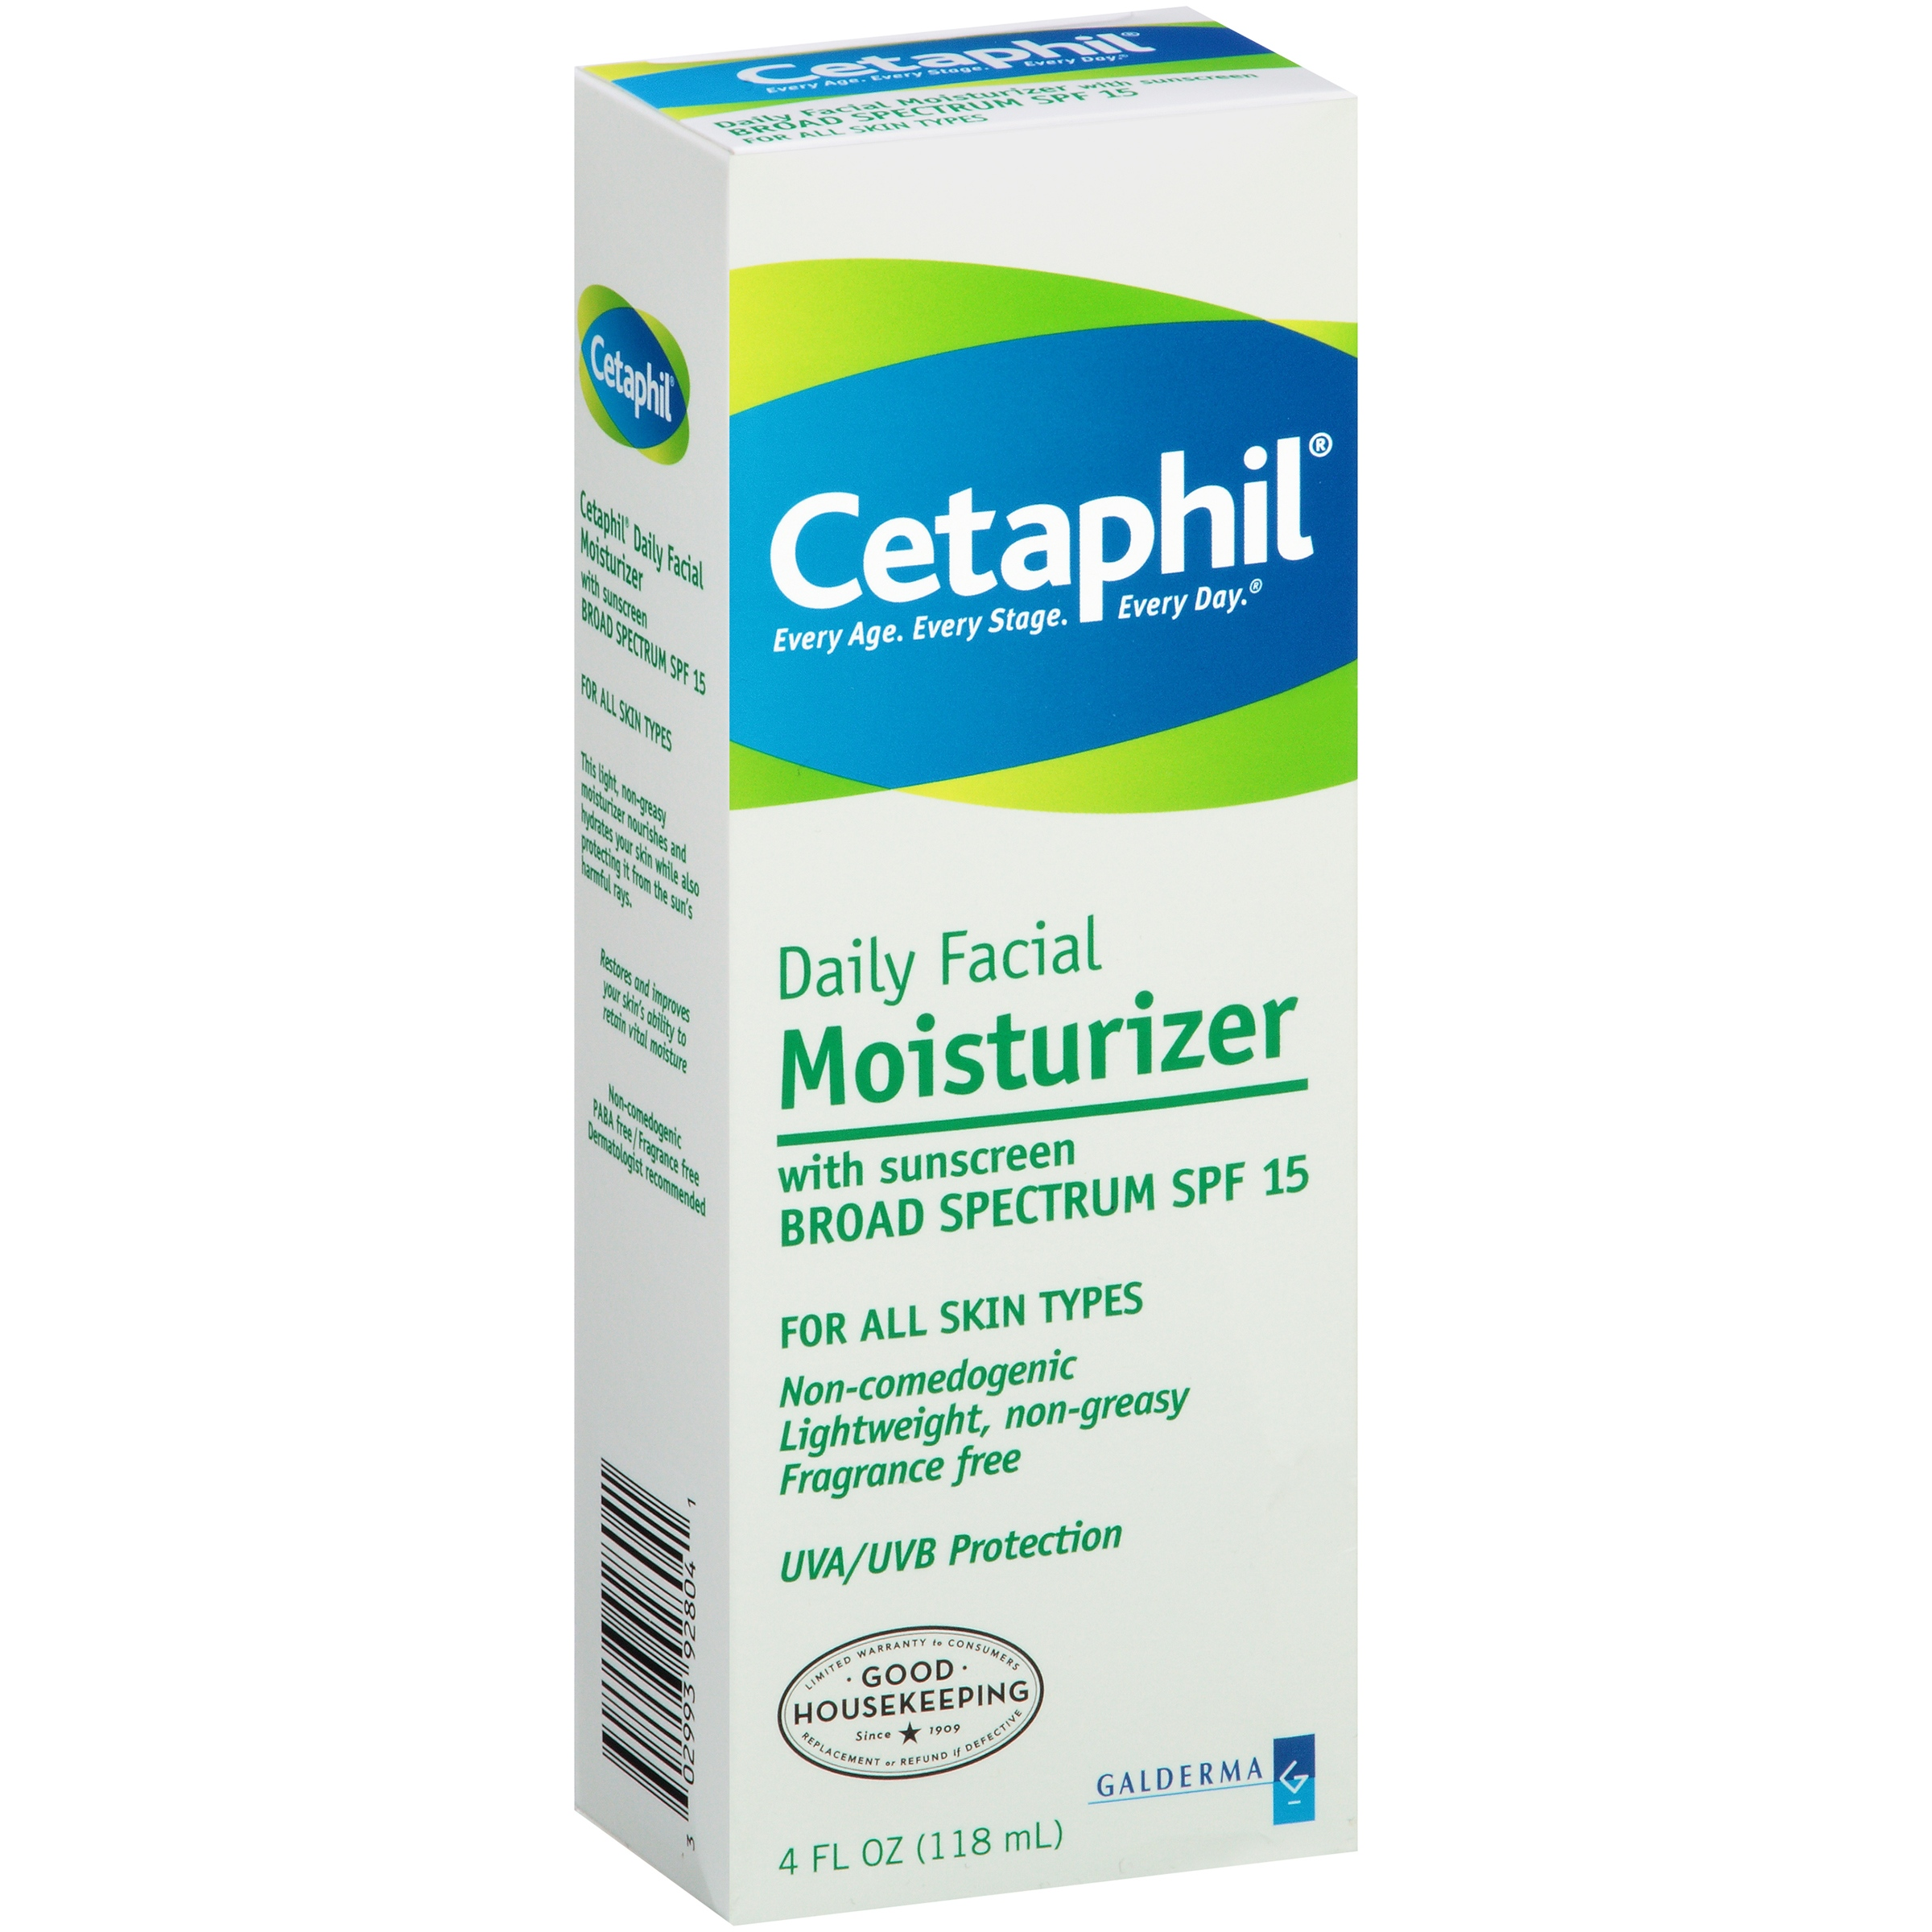 Cetaphil All Skin Types SPF 15 Daily Facial Moisturizer, 4.0 FL OZ